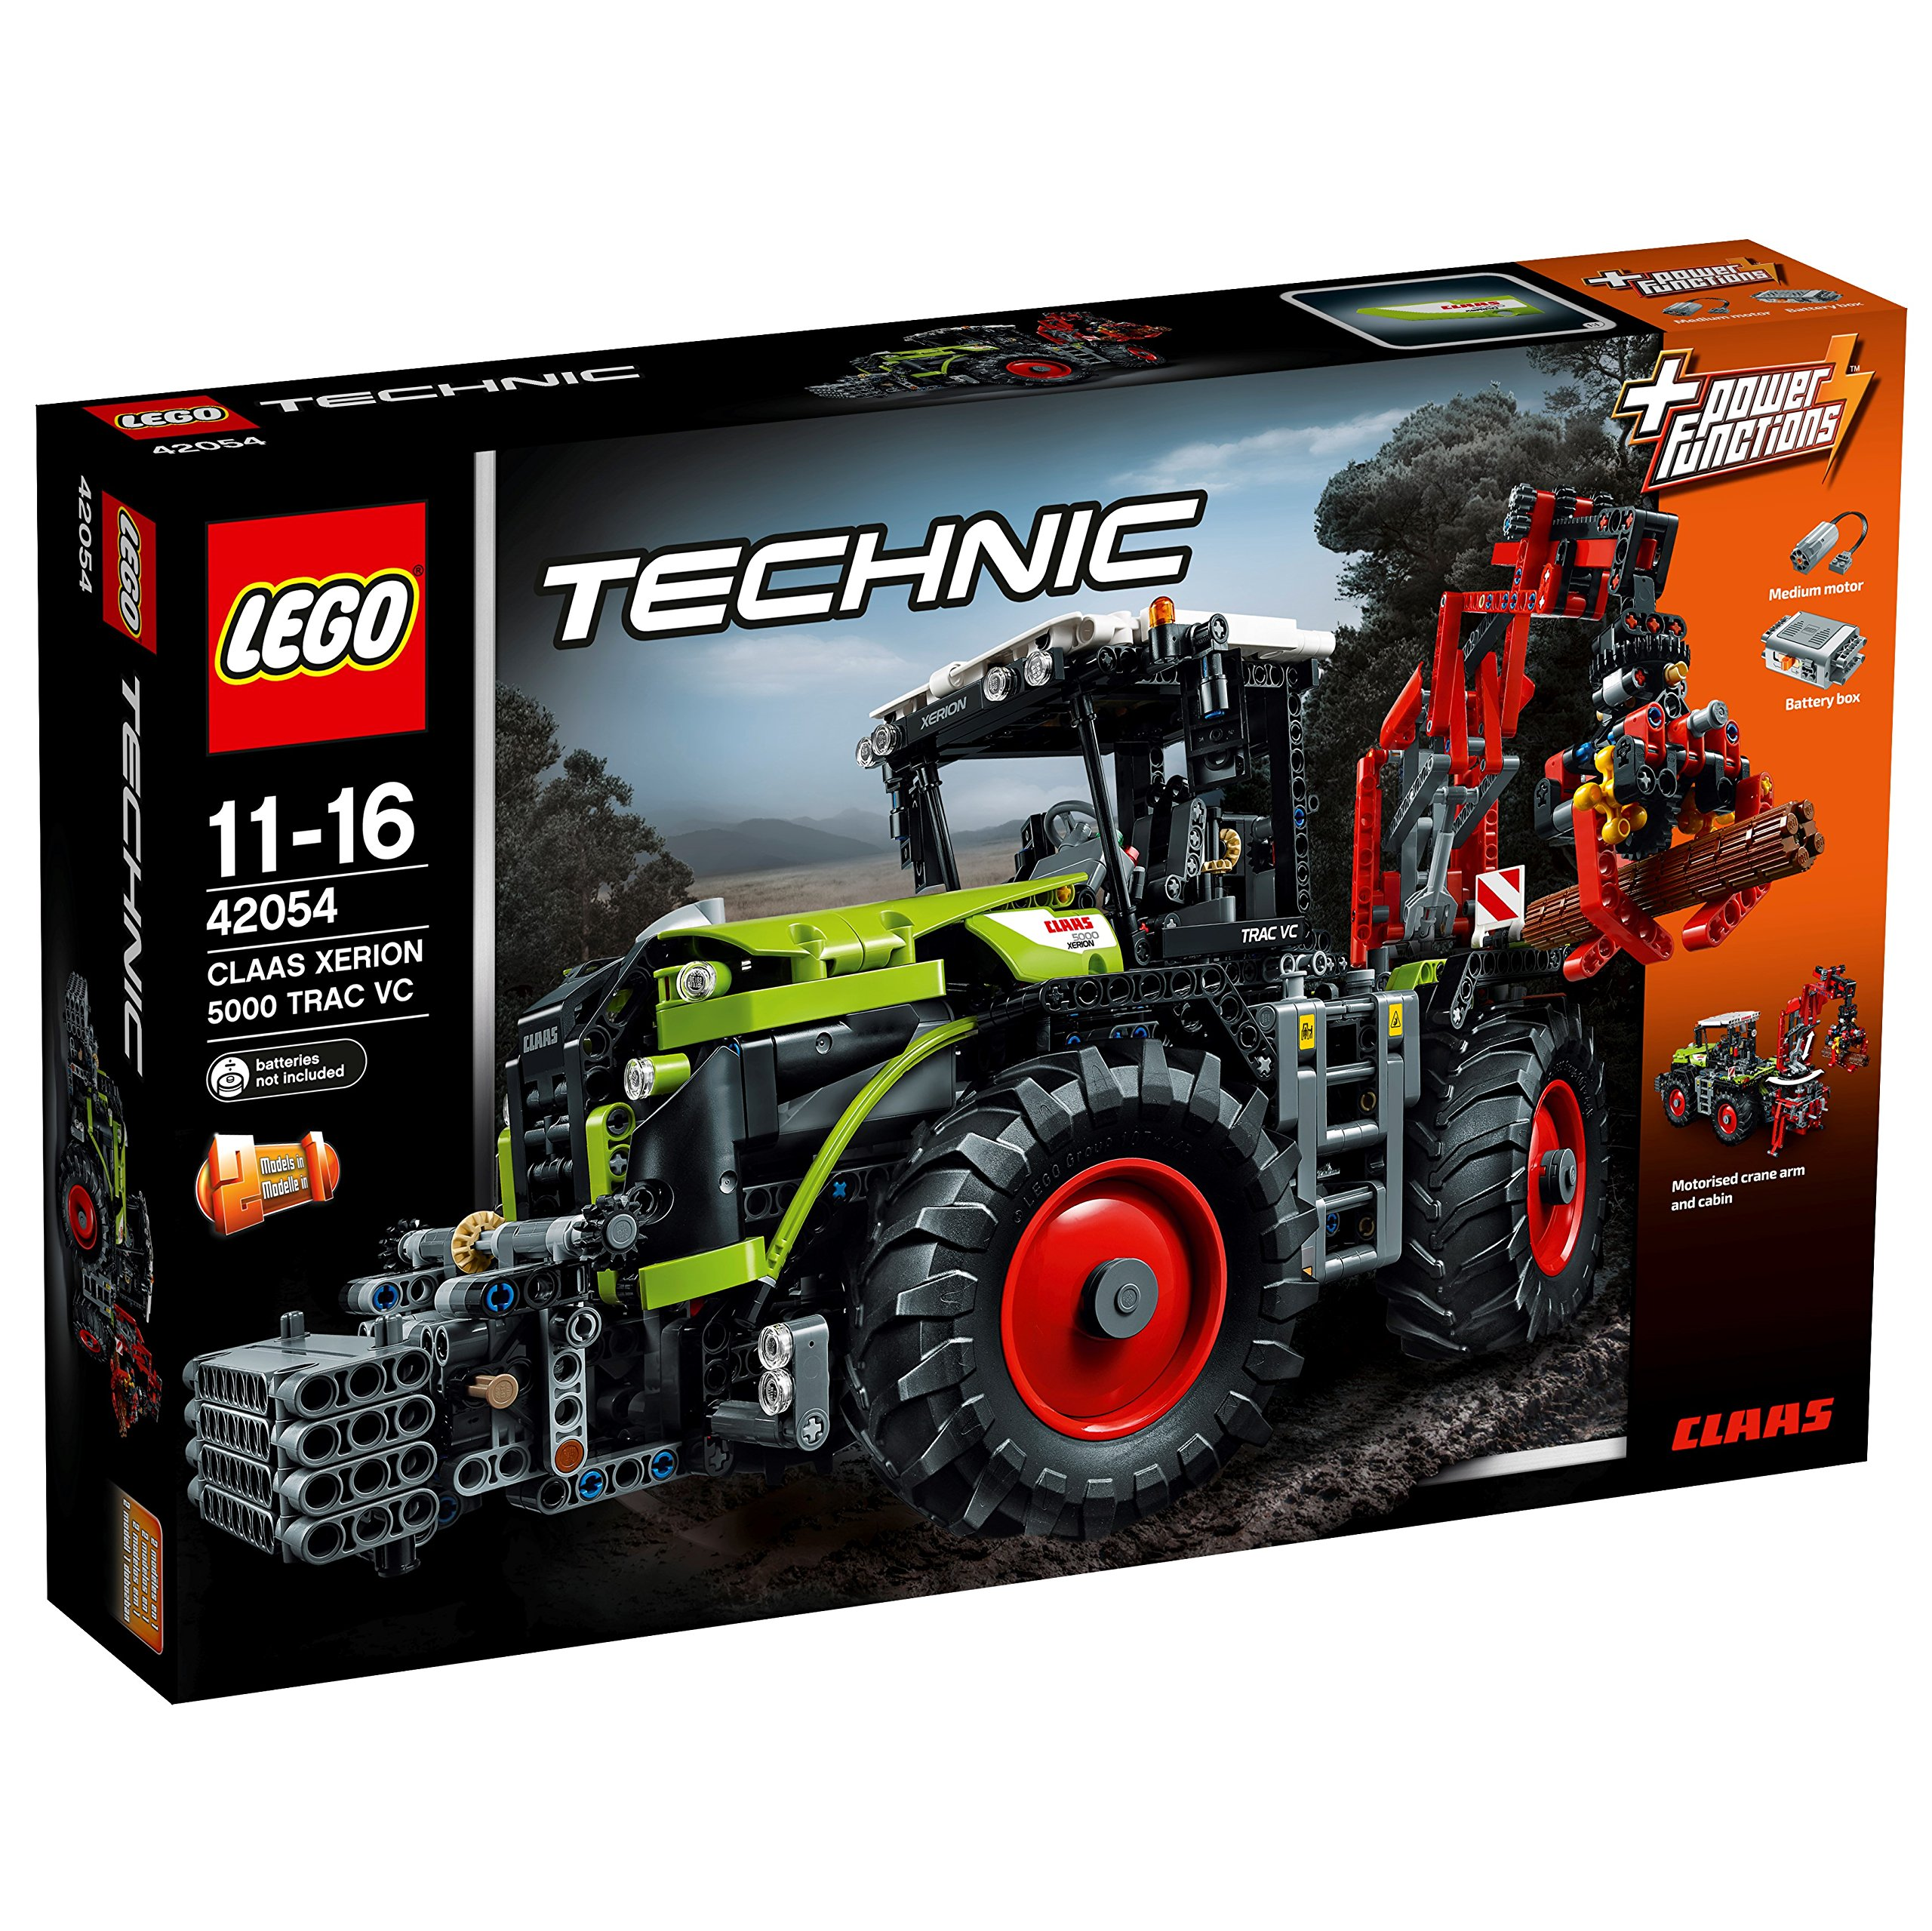 LEGO Technic 42054 – Claas Xerion 5000 TRAC VC, Power Functions Motor